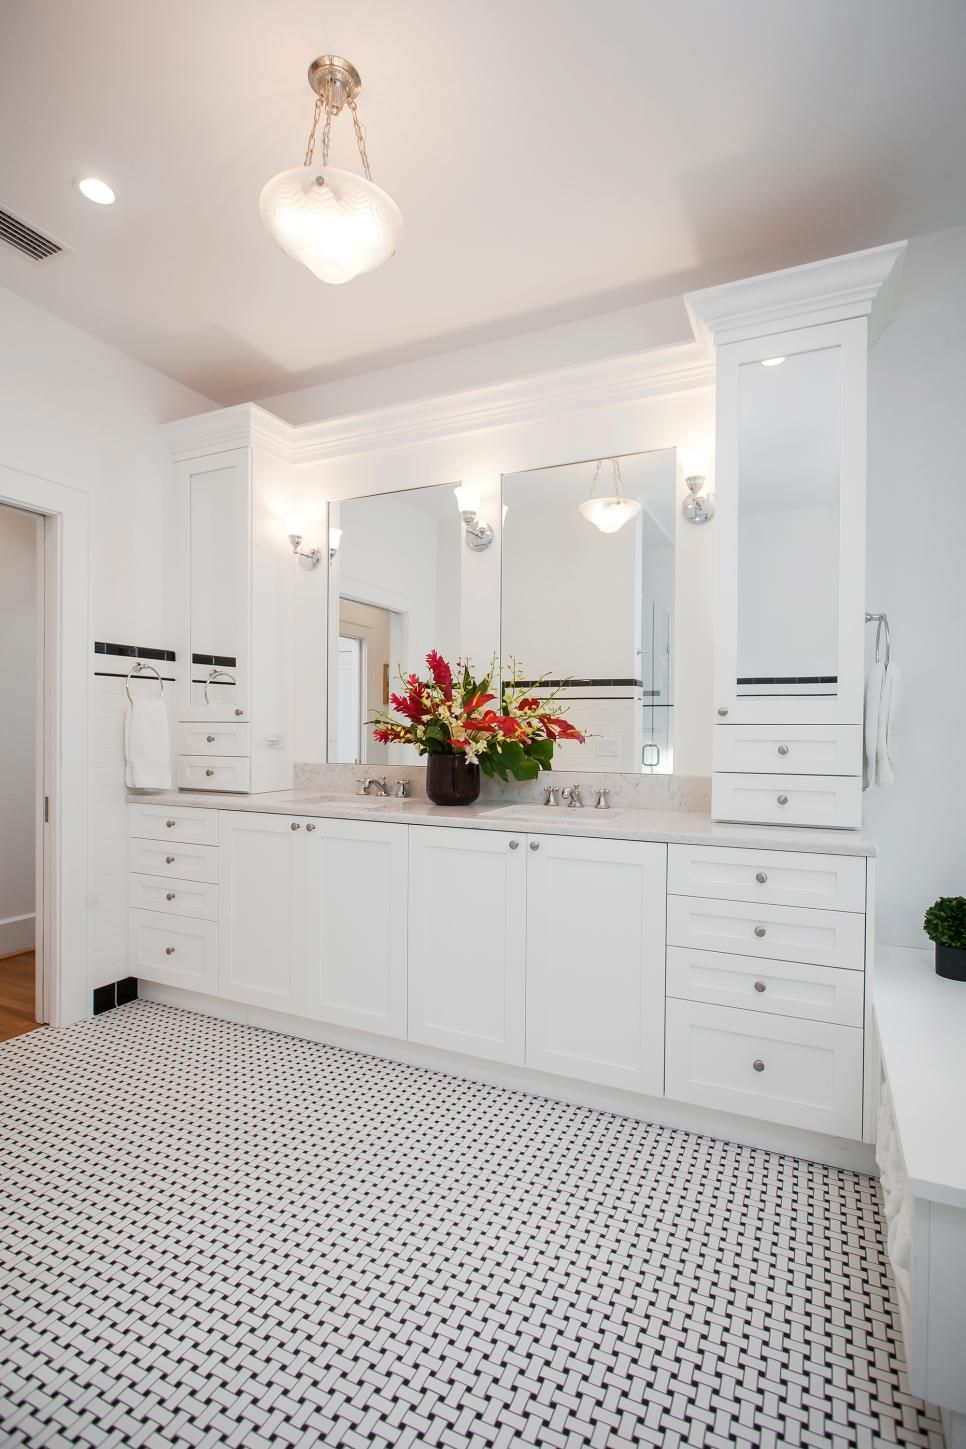 This Bathroom Remodel Features A Long White Vanity With Double Sinks Extra Cabinets And